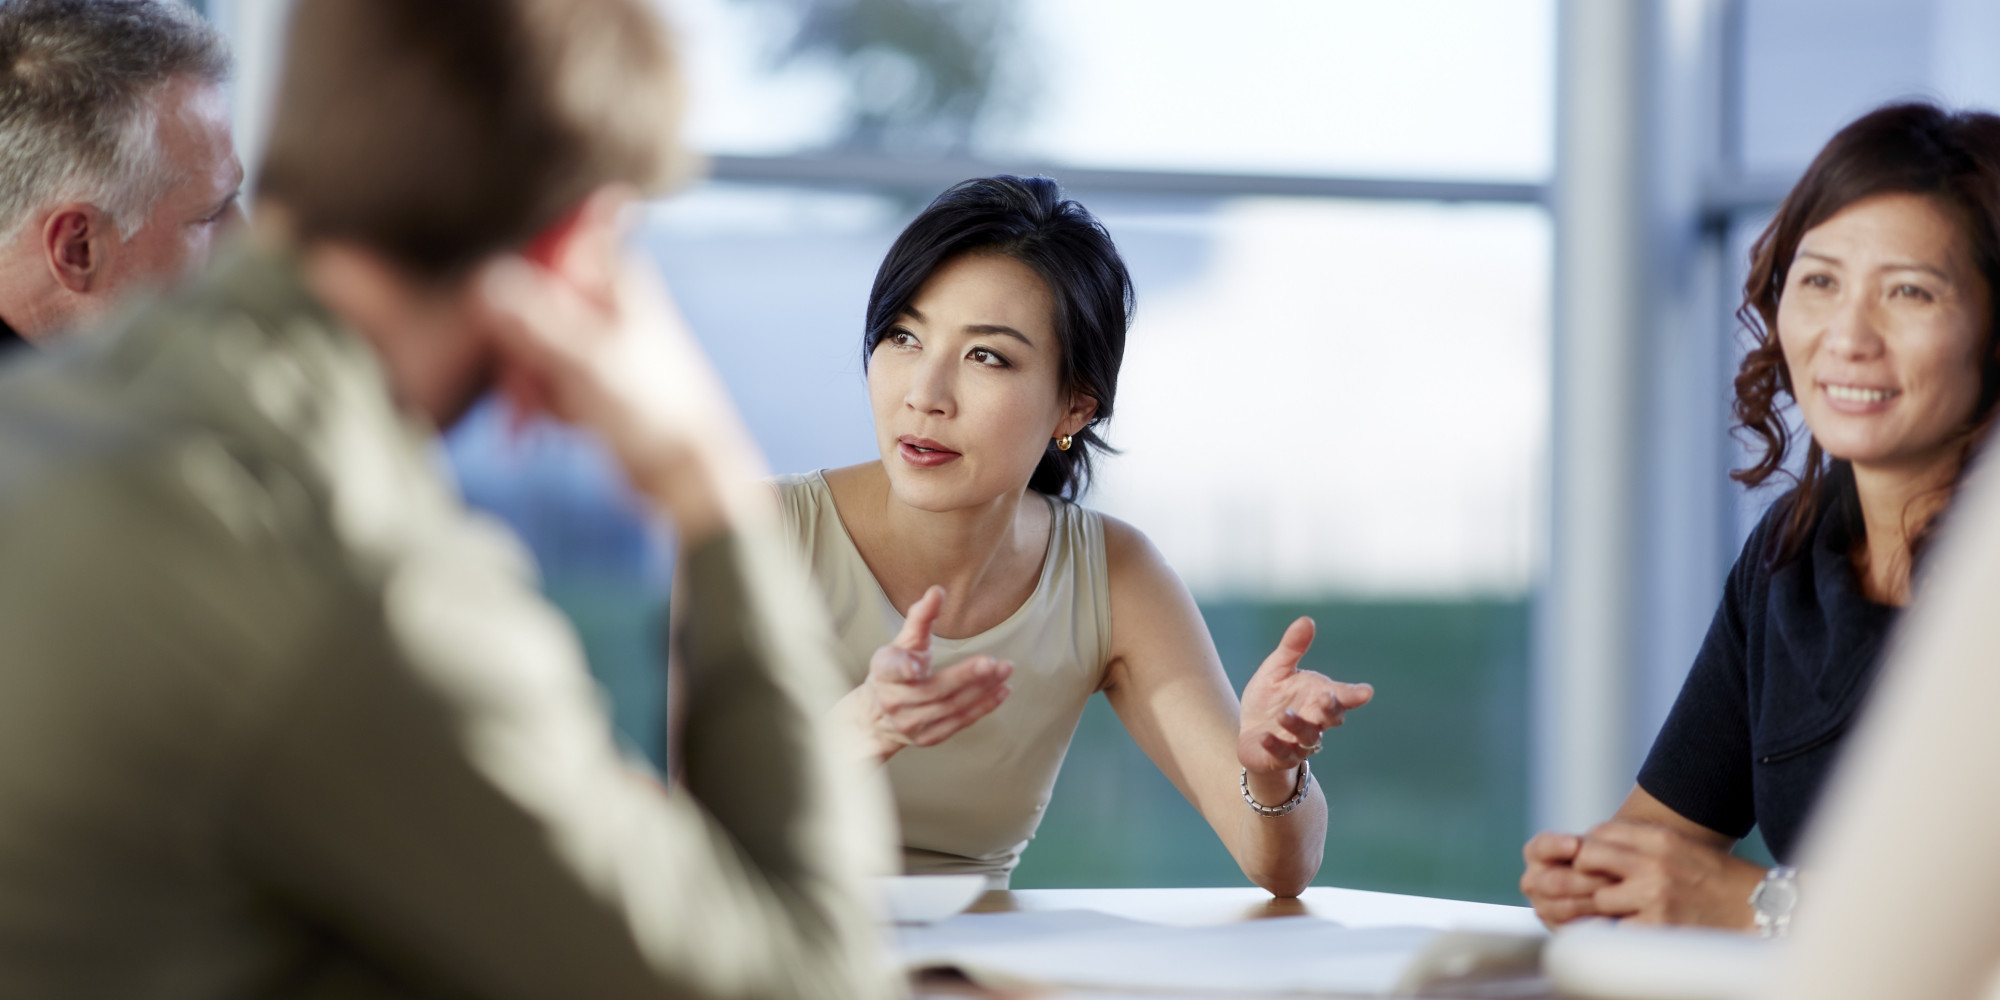 an asian woman asking questions at a business meeting